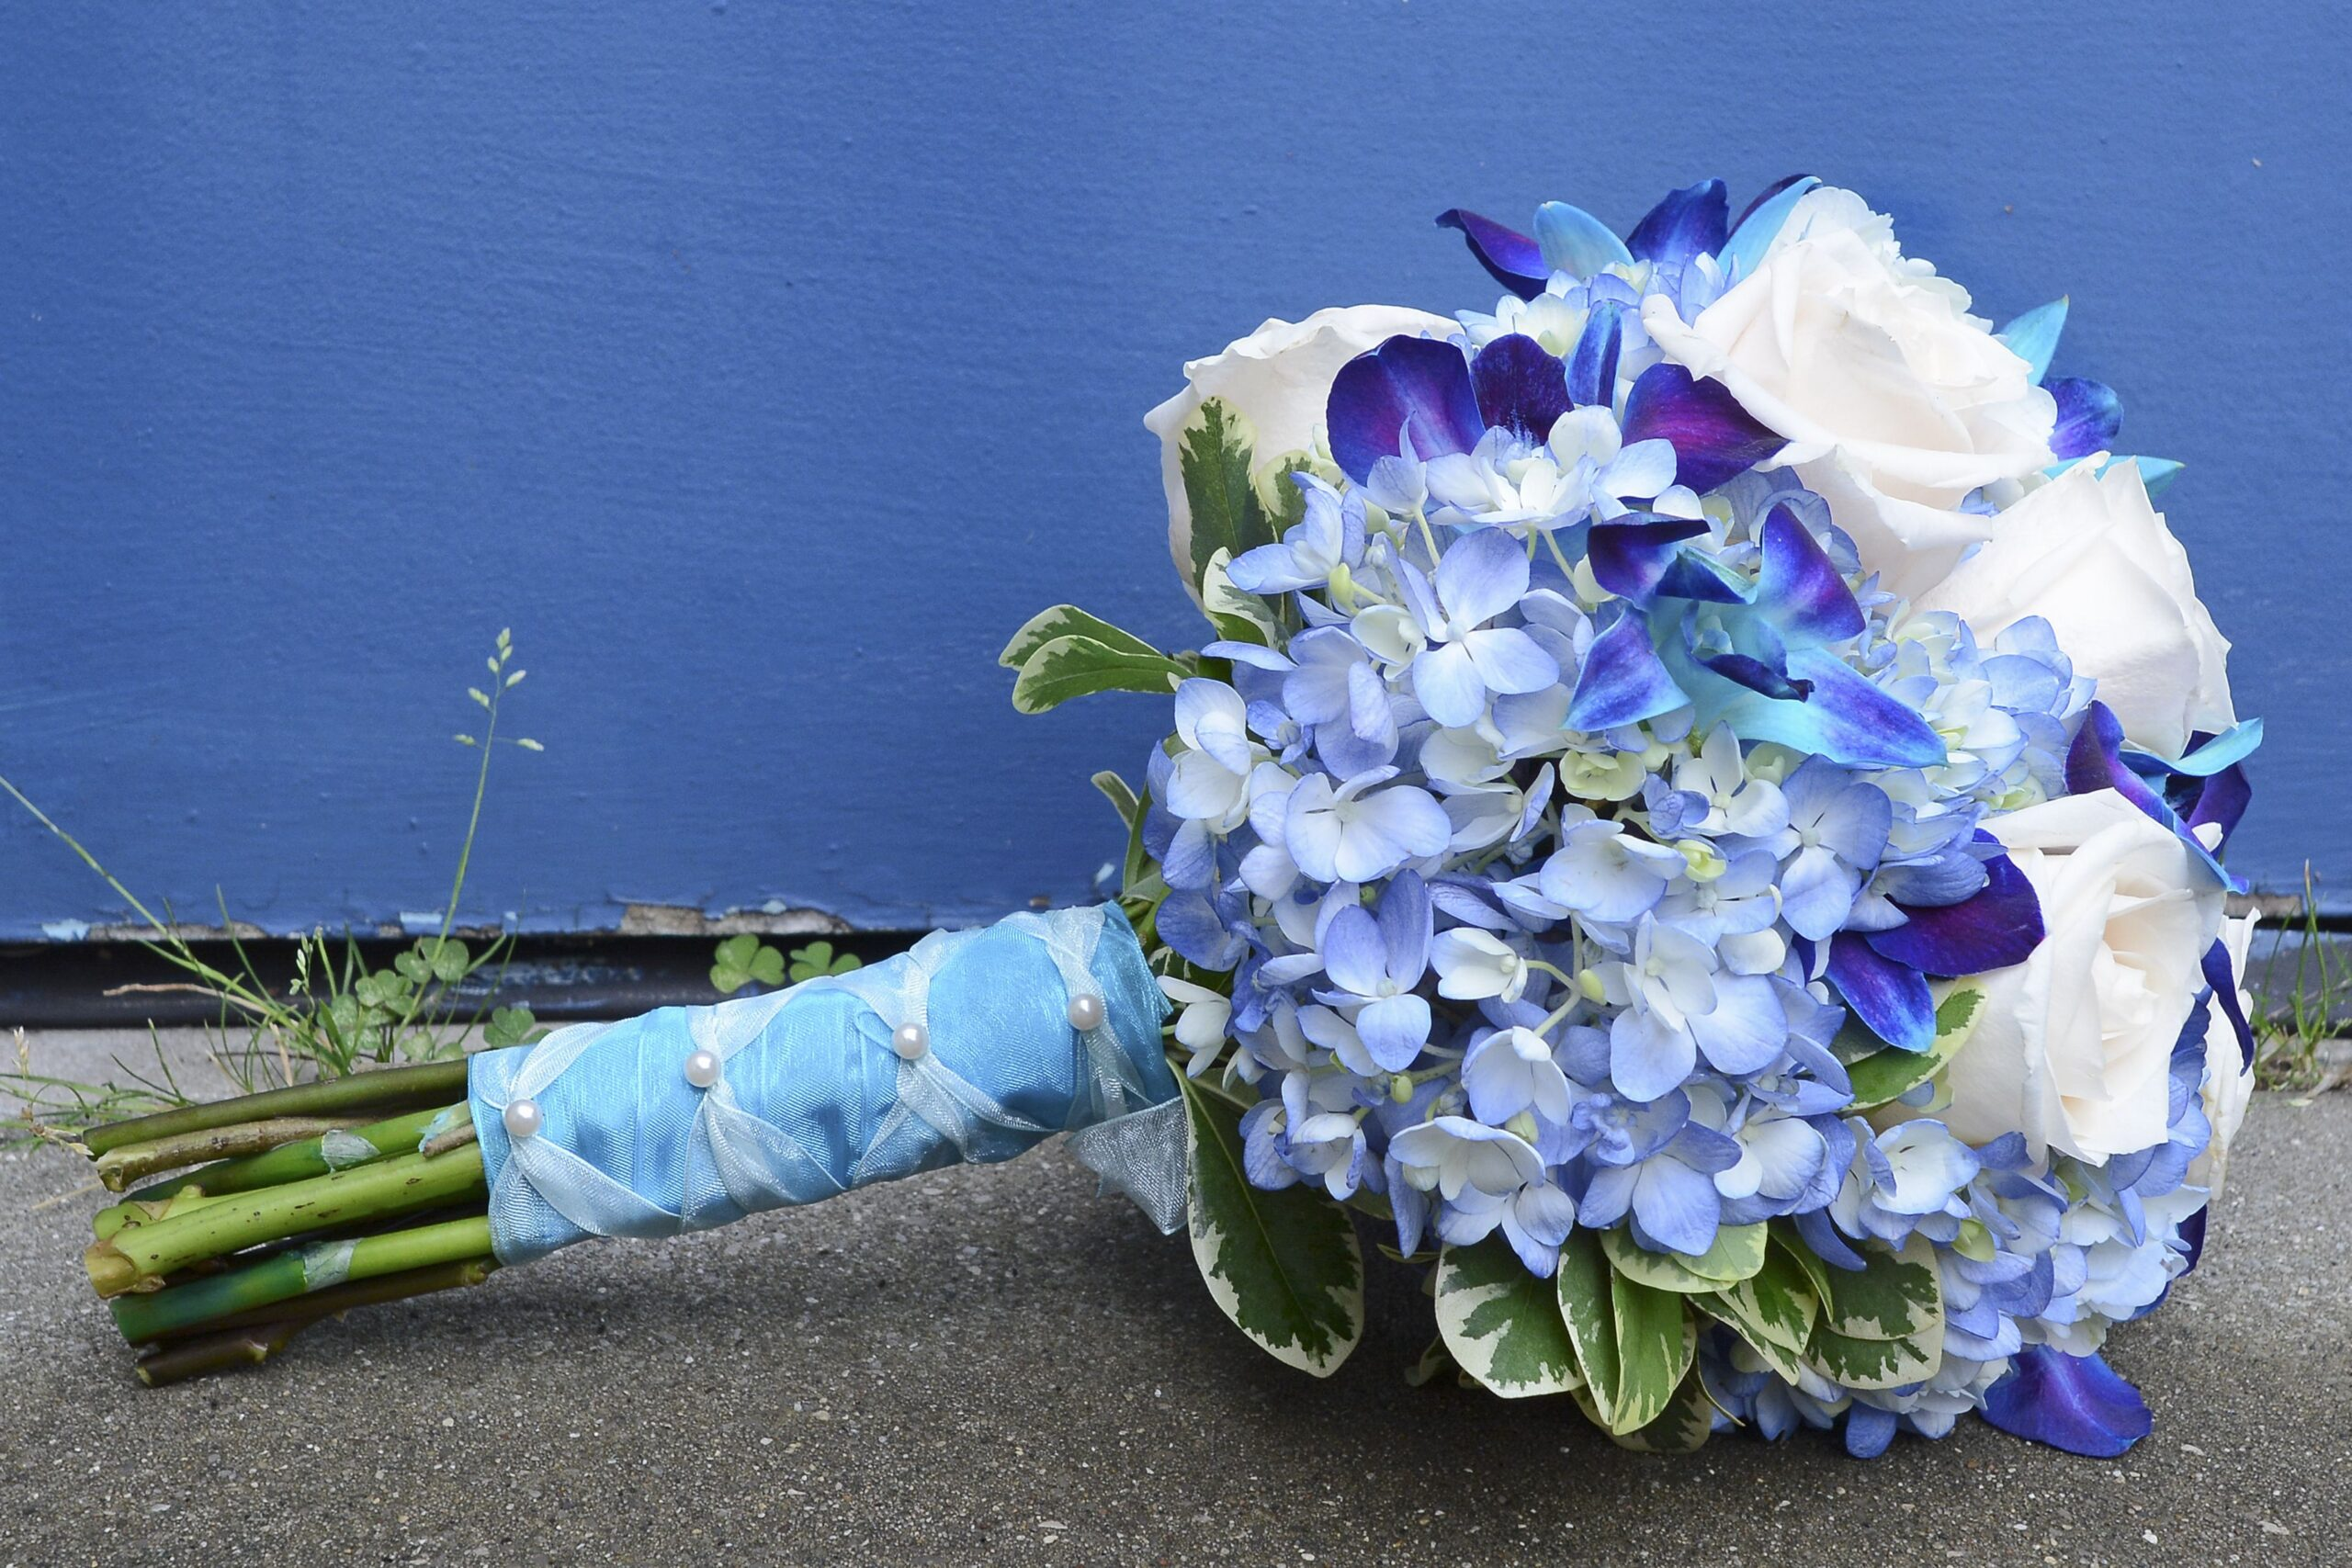 choose blue roses wedding bouquets for your wedding 9 scaled - Choose Blue Roses Wedding Bouquets for Your Wedding